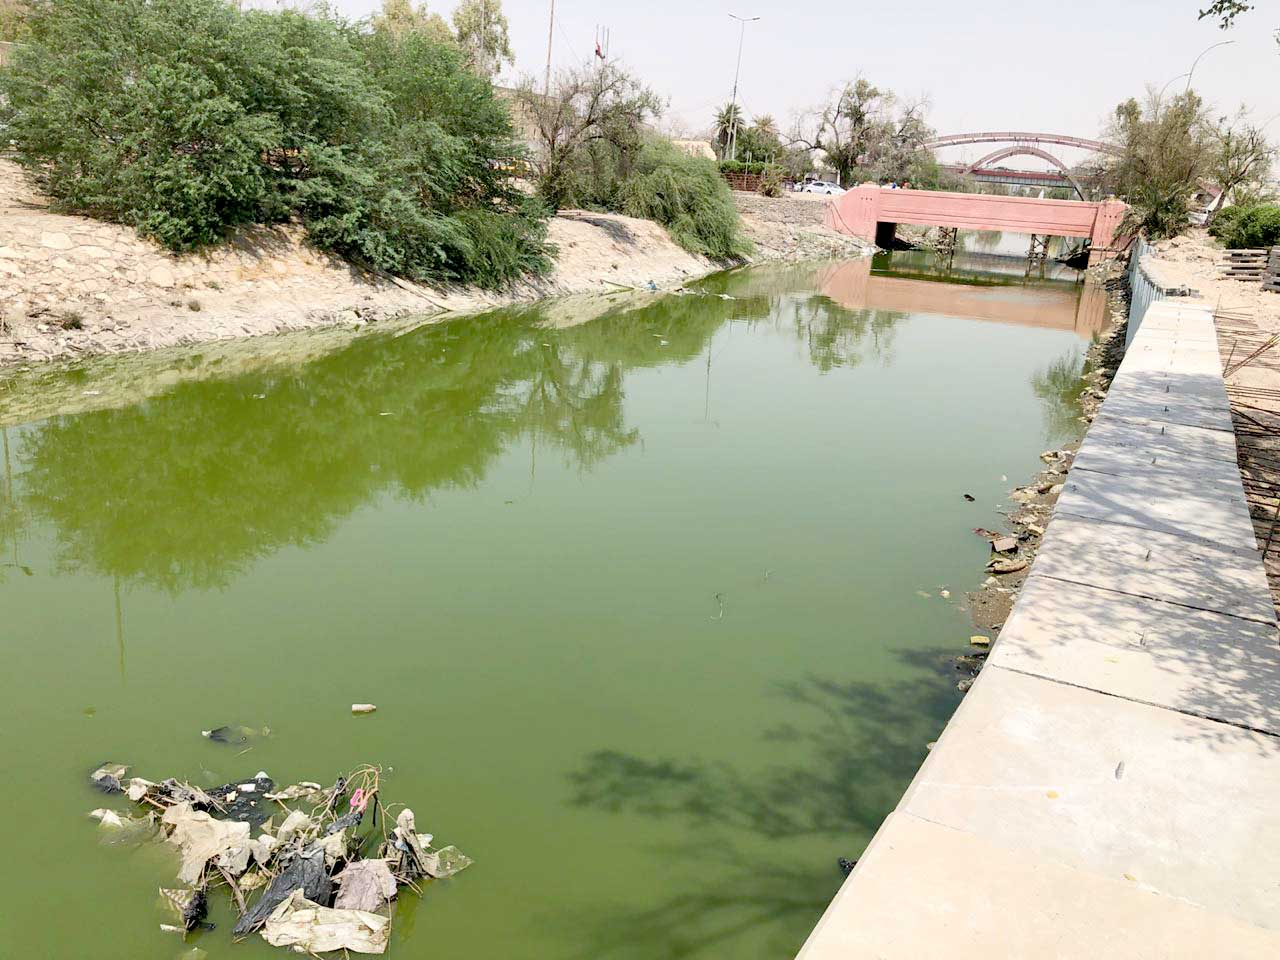 A view of a water stream in the Iraqi city of Basra. (Mohammad Dylan)